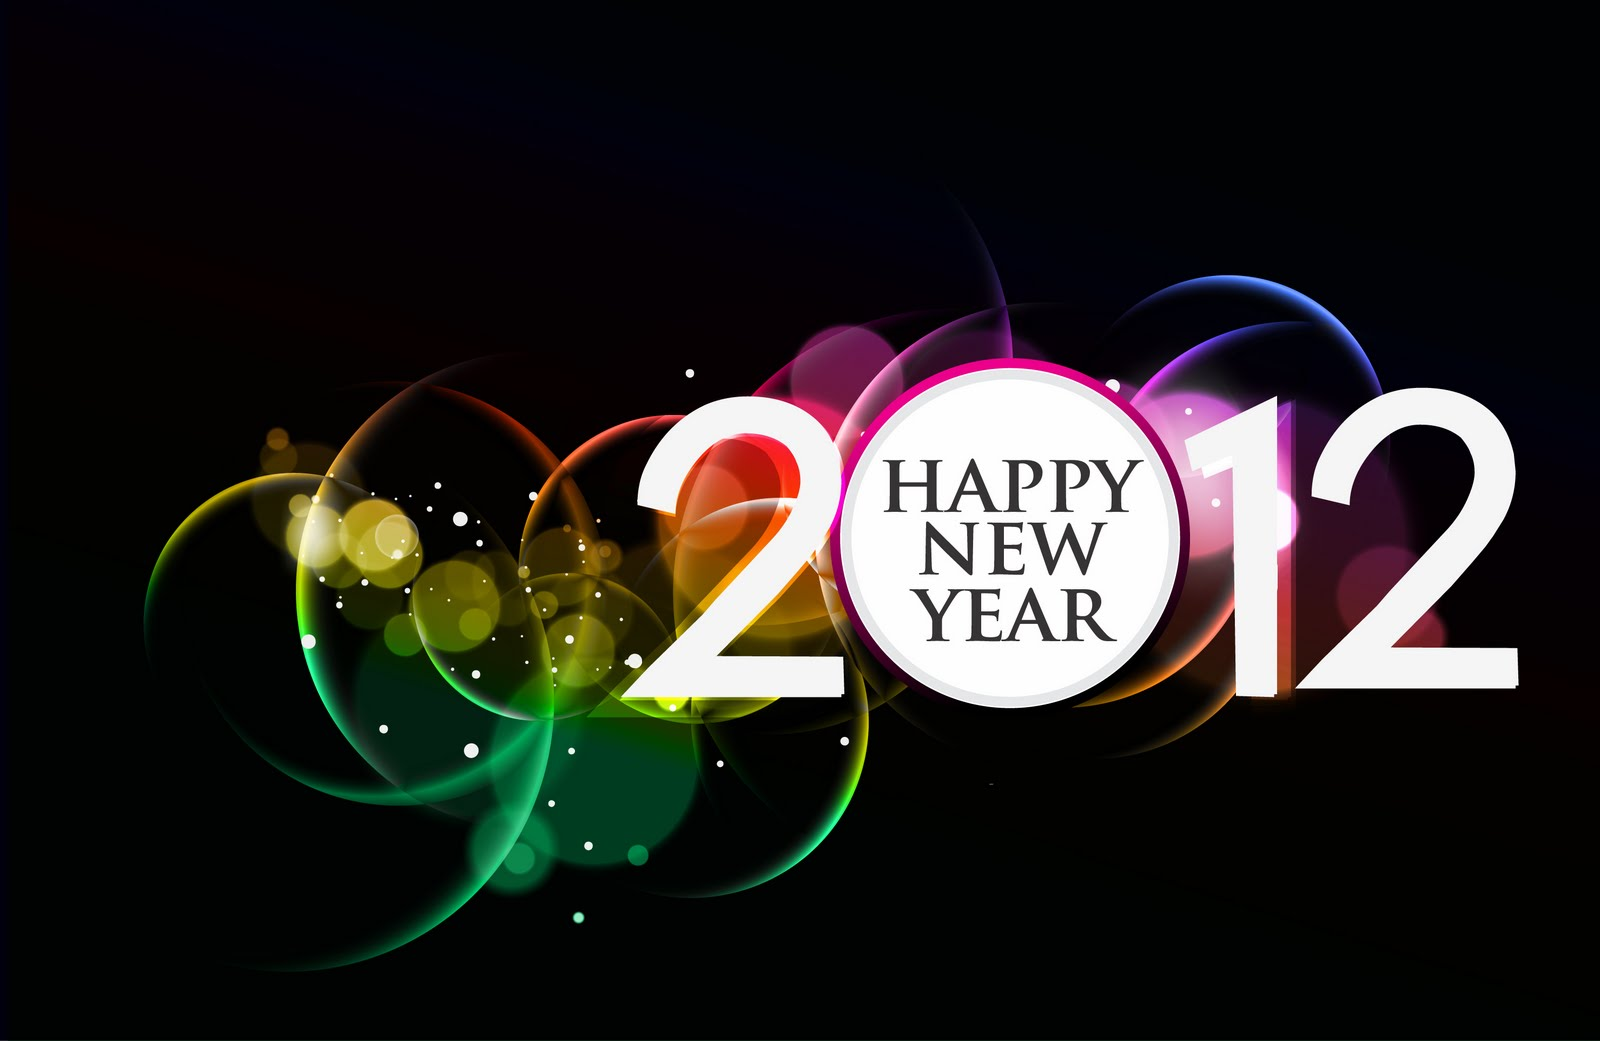 Happy New Year 2012 wallpaper. 1600 x 1041.Happy New Year Foto